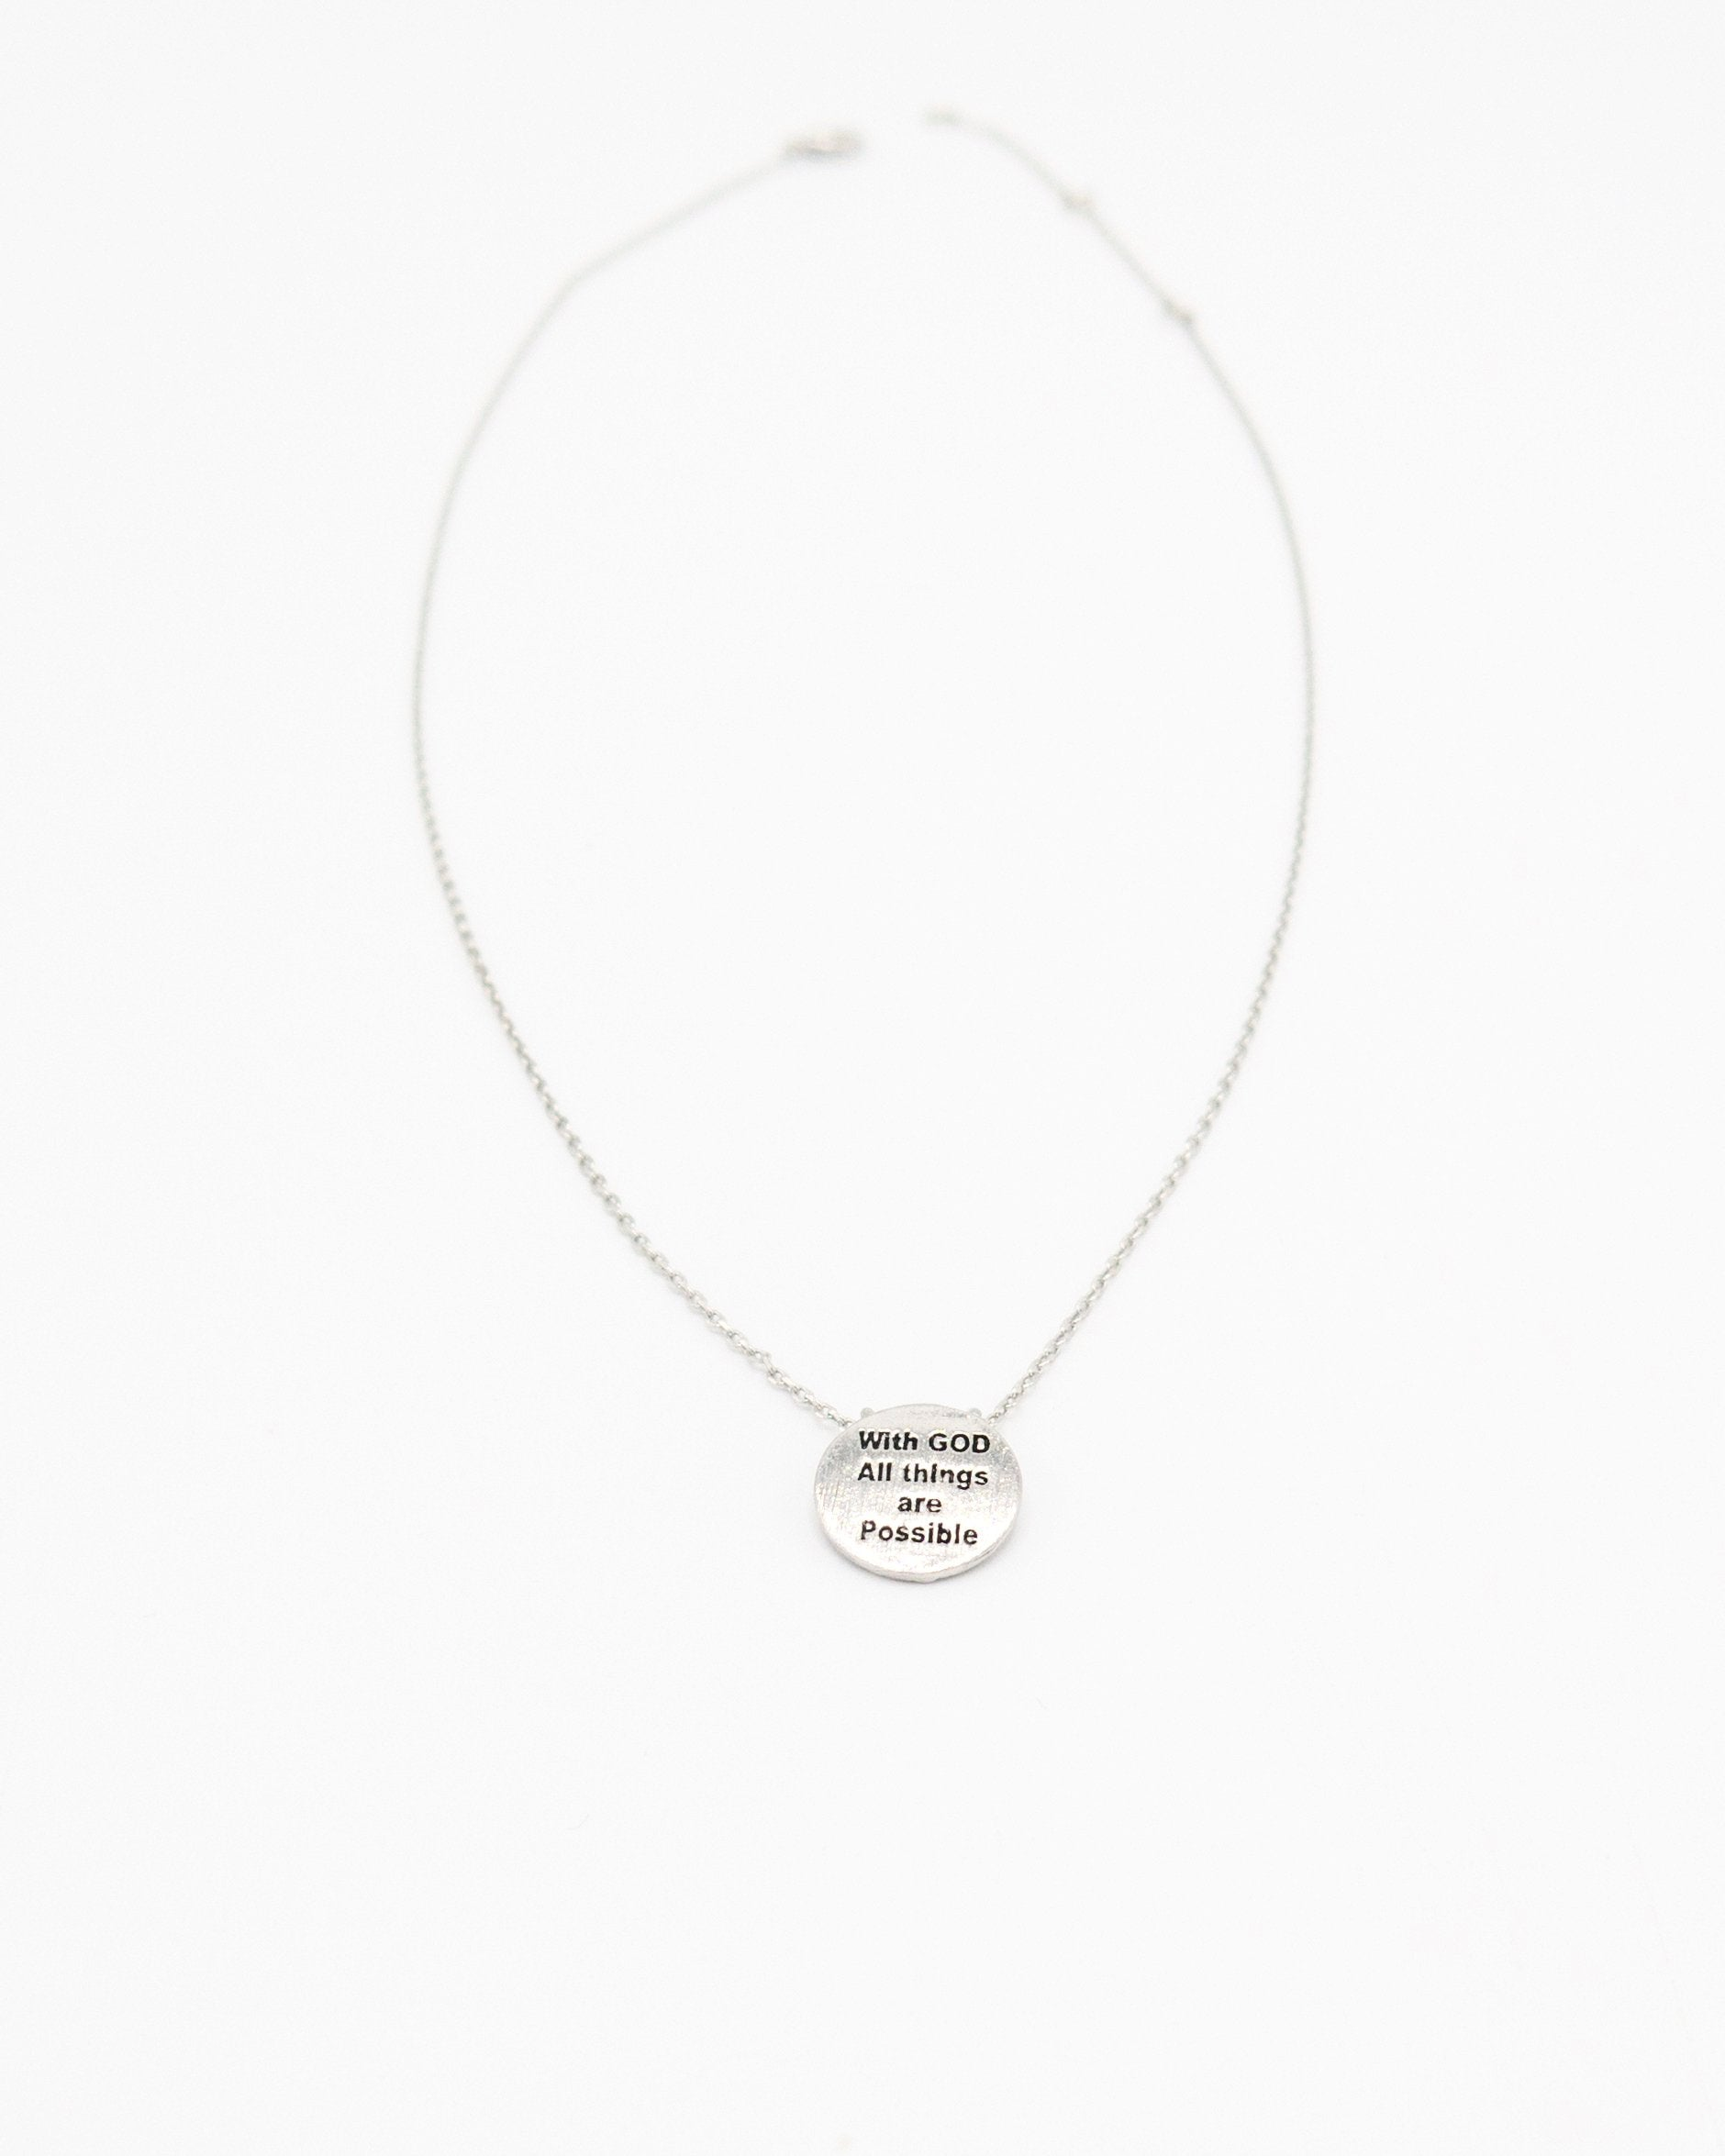 With God All Things Are Possible Inspirational Round Necklace in silver